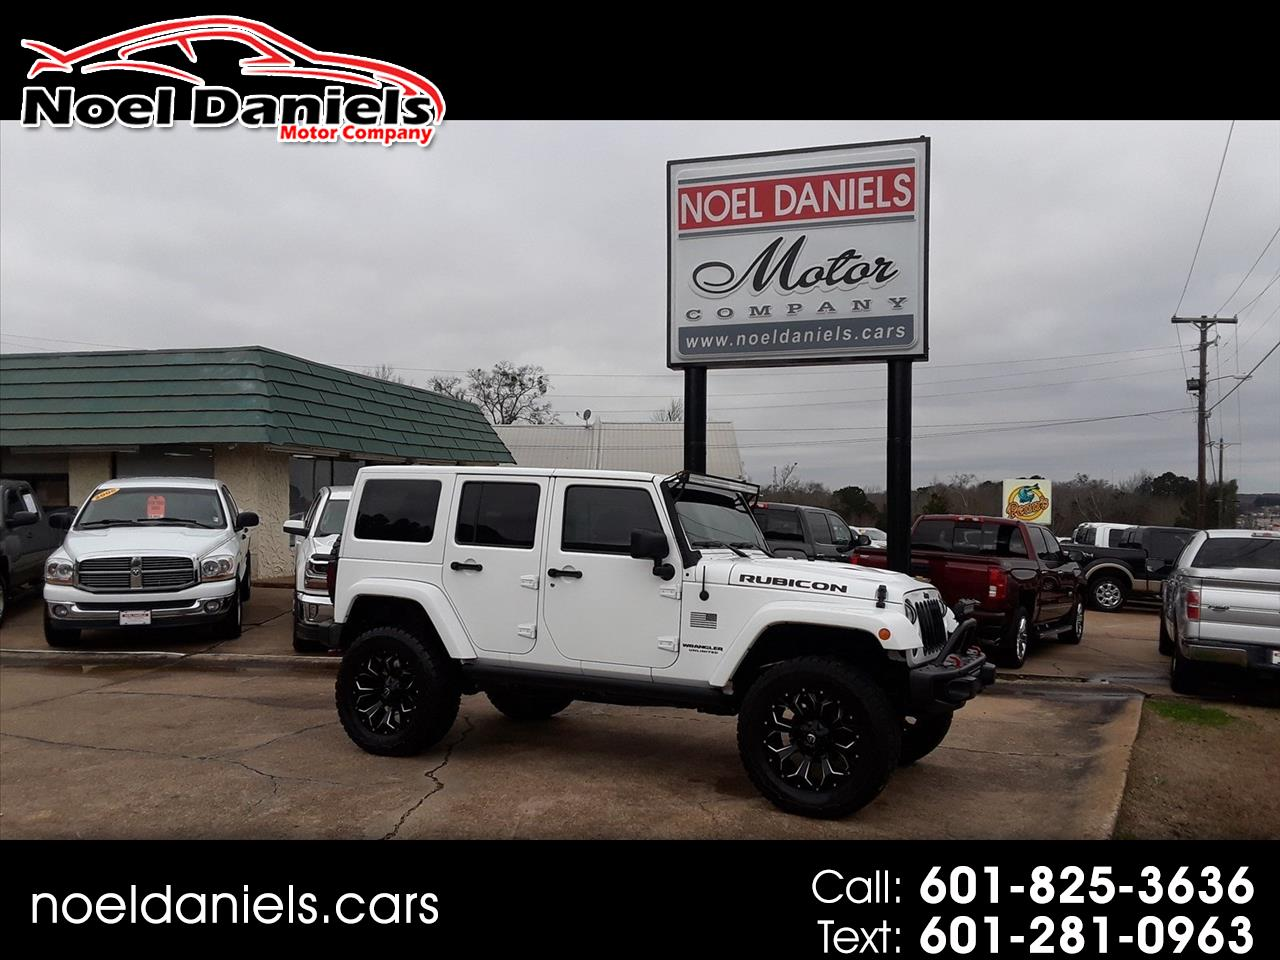 2015 Jeep Wrangler Unlimited 4WD 4 dr Rubicon Unlimited